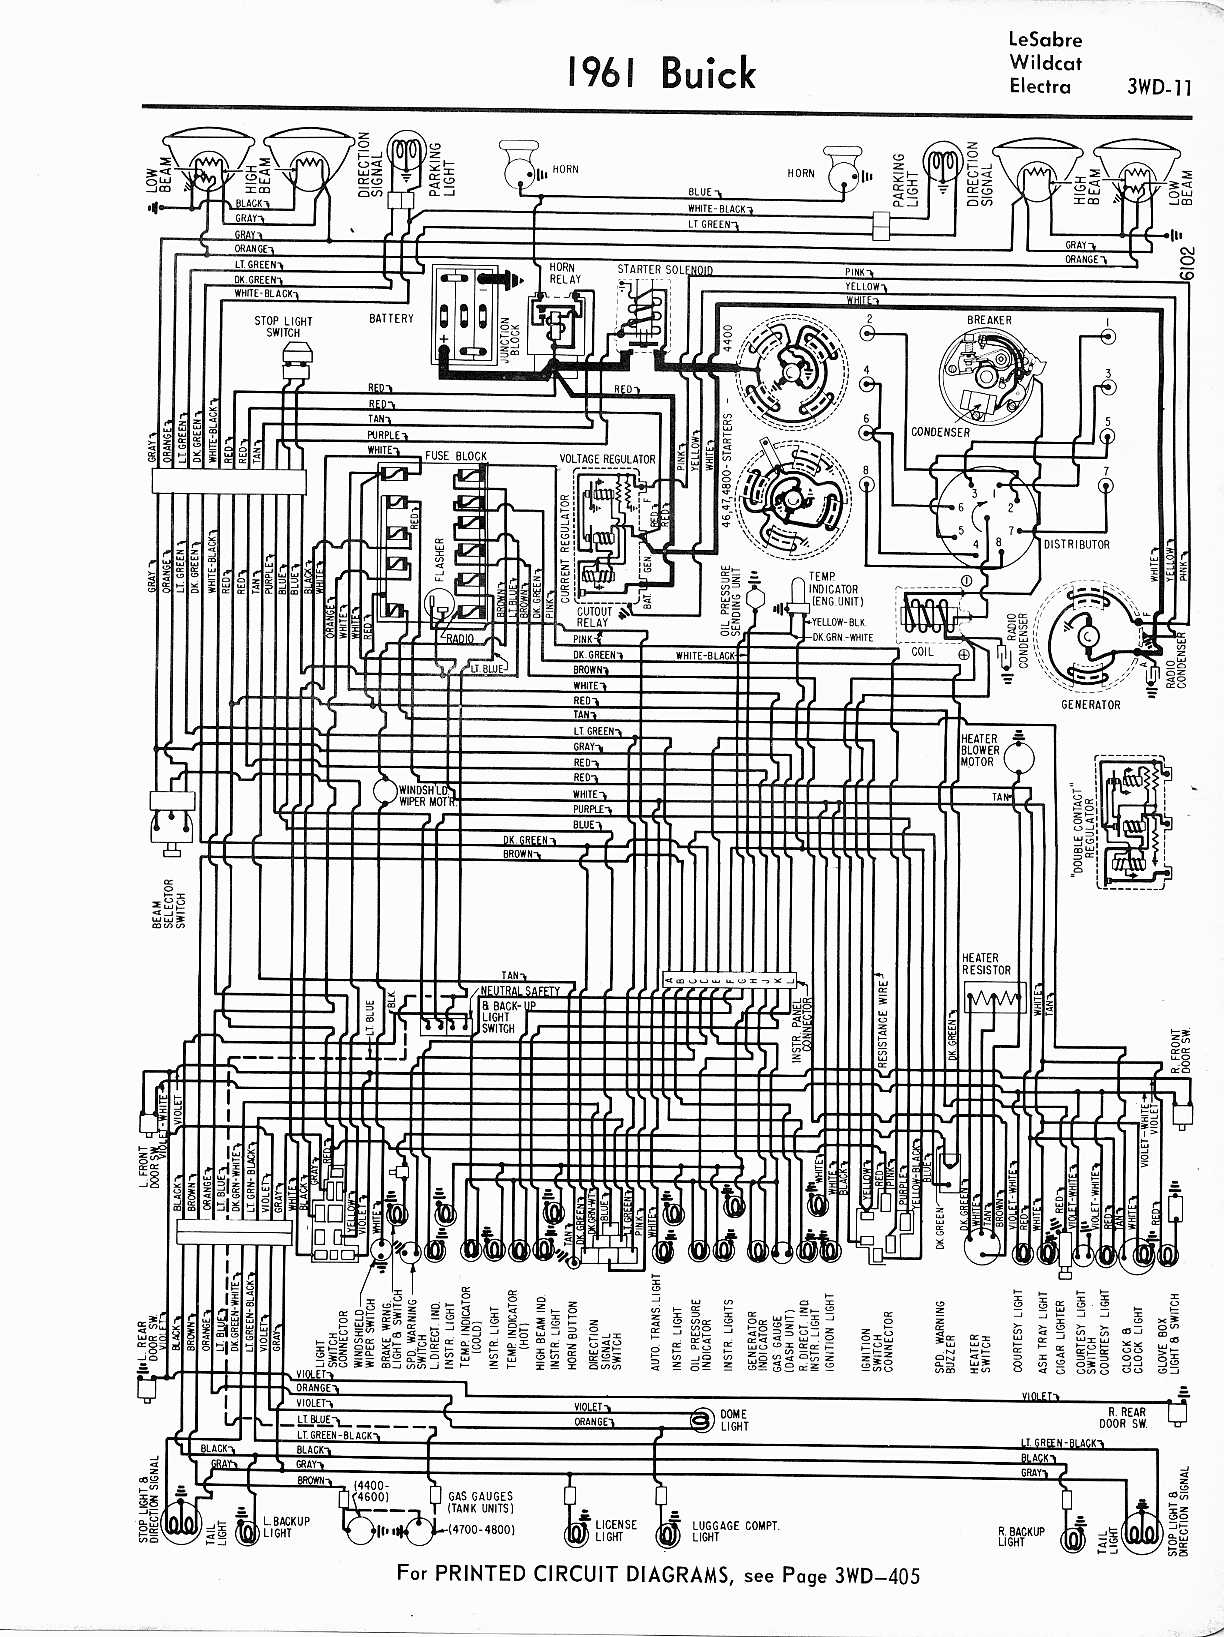 Sensational 1970 Buick 455 Wiring Diagram Wiring Diagram Data Schema Wiring Digital Resources Funapmognl